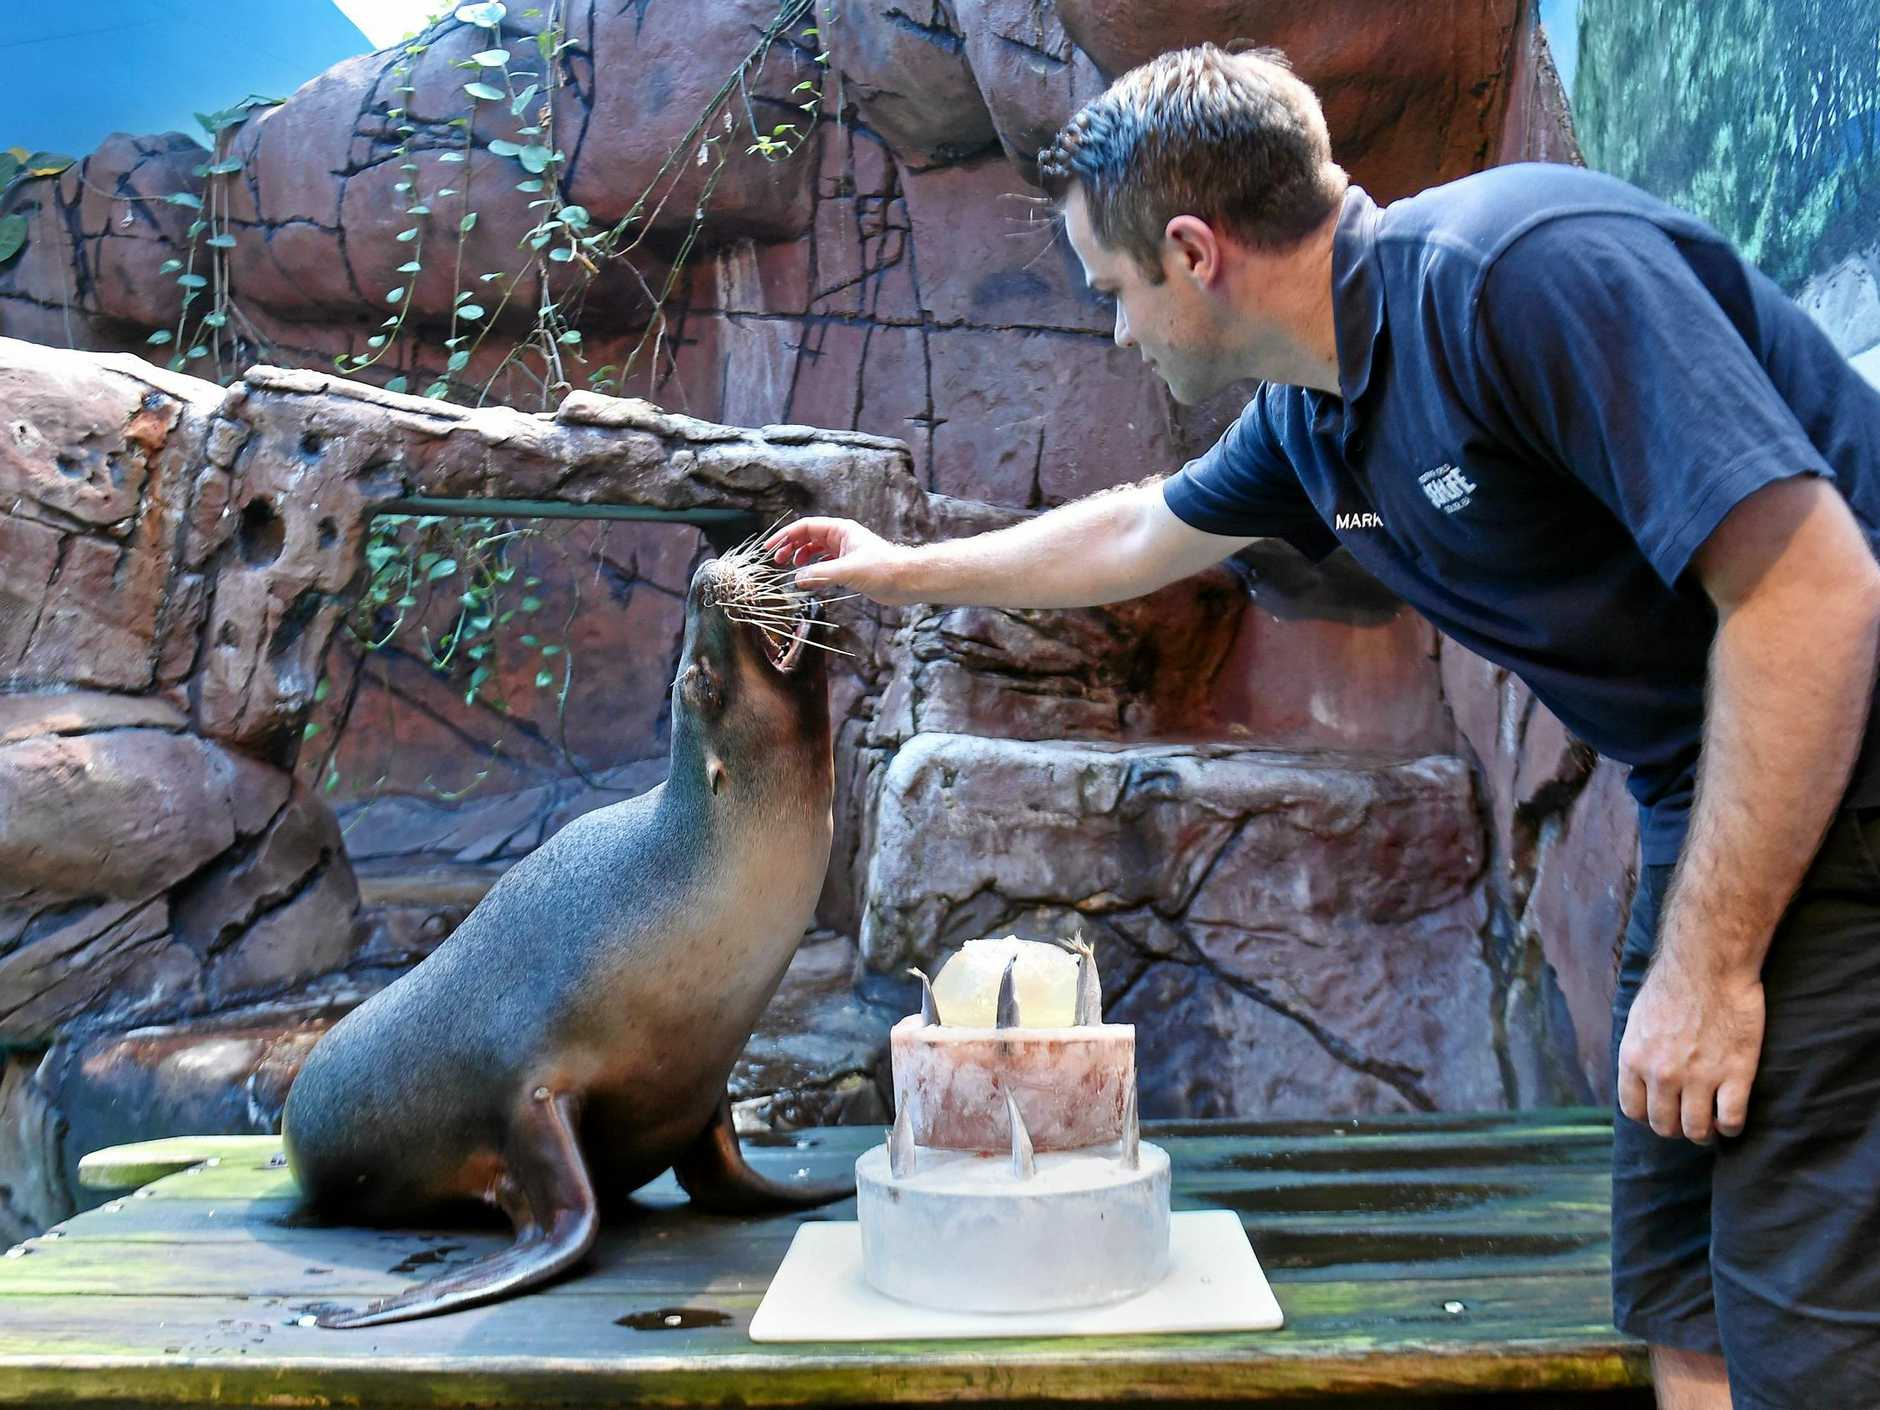 Portia the seal at Sea Life is celebrating her 28th Birthday with staff member Mark Ryan feeding her bithday cake.